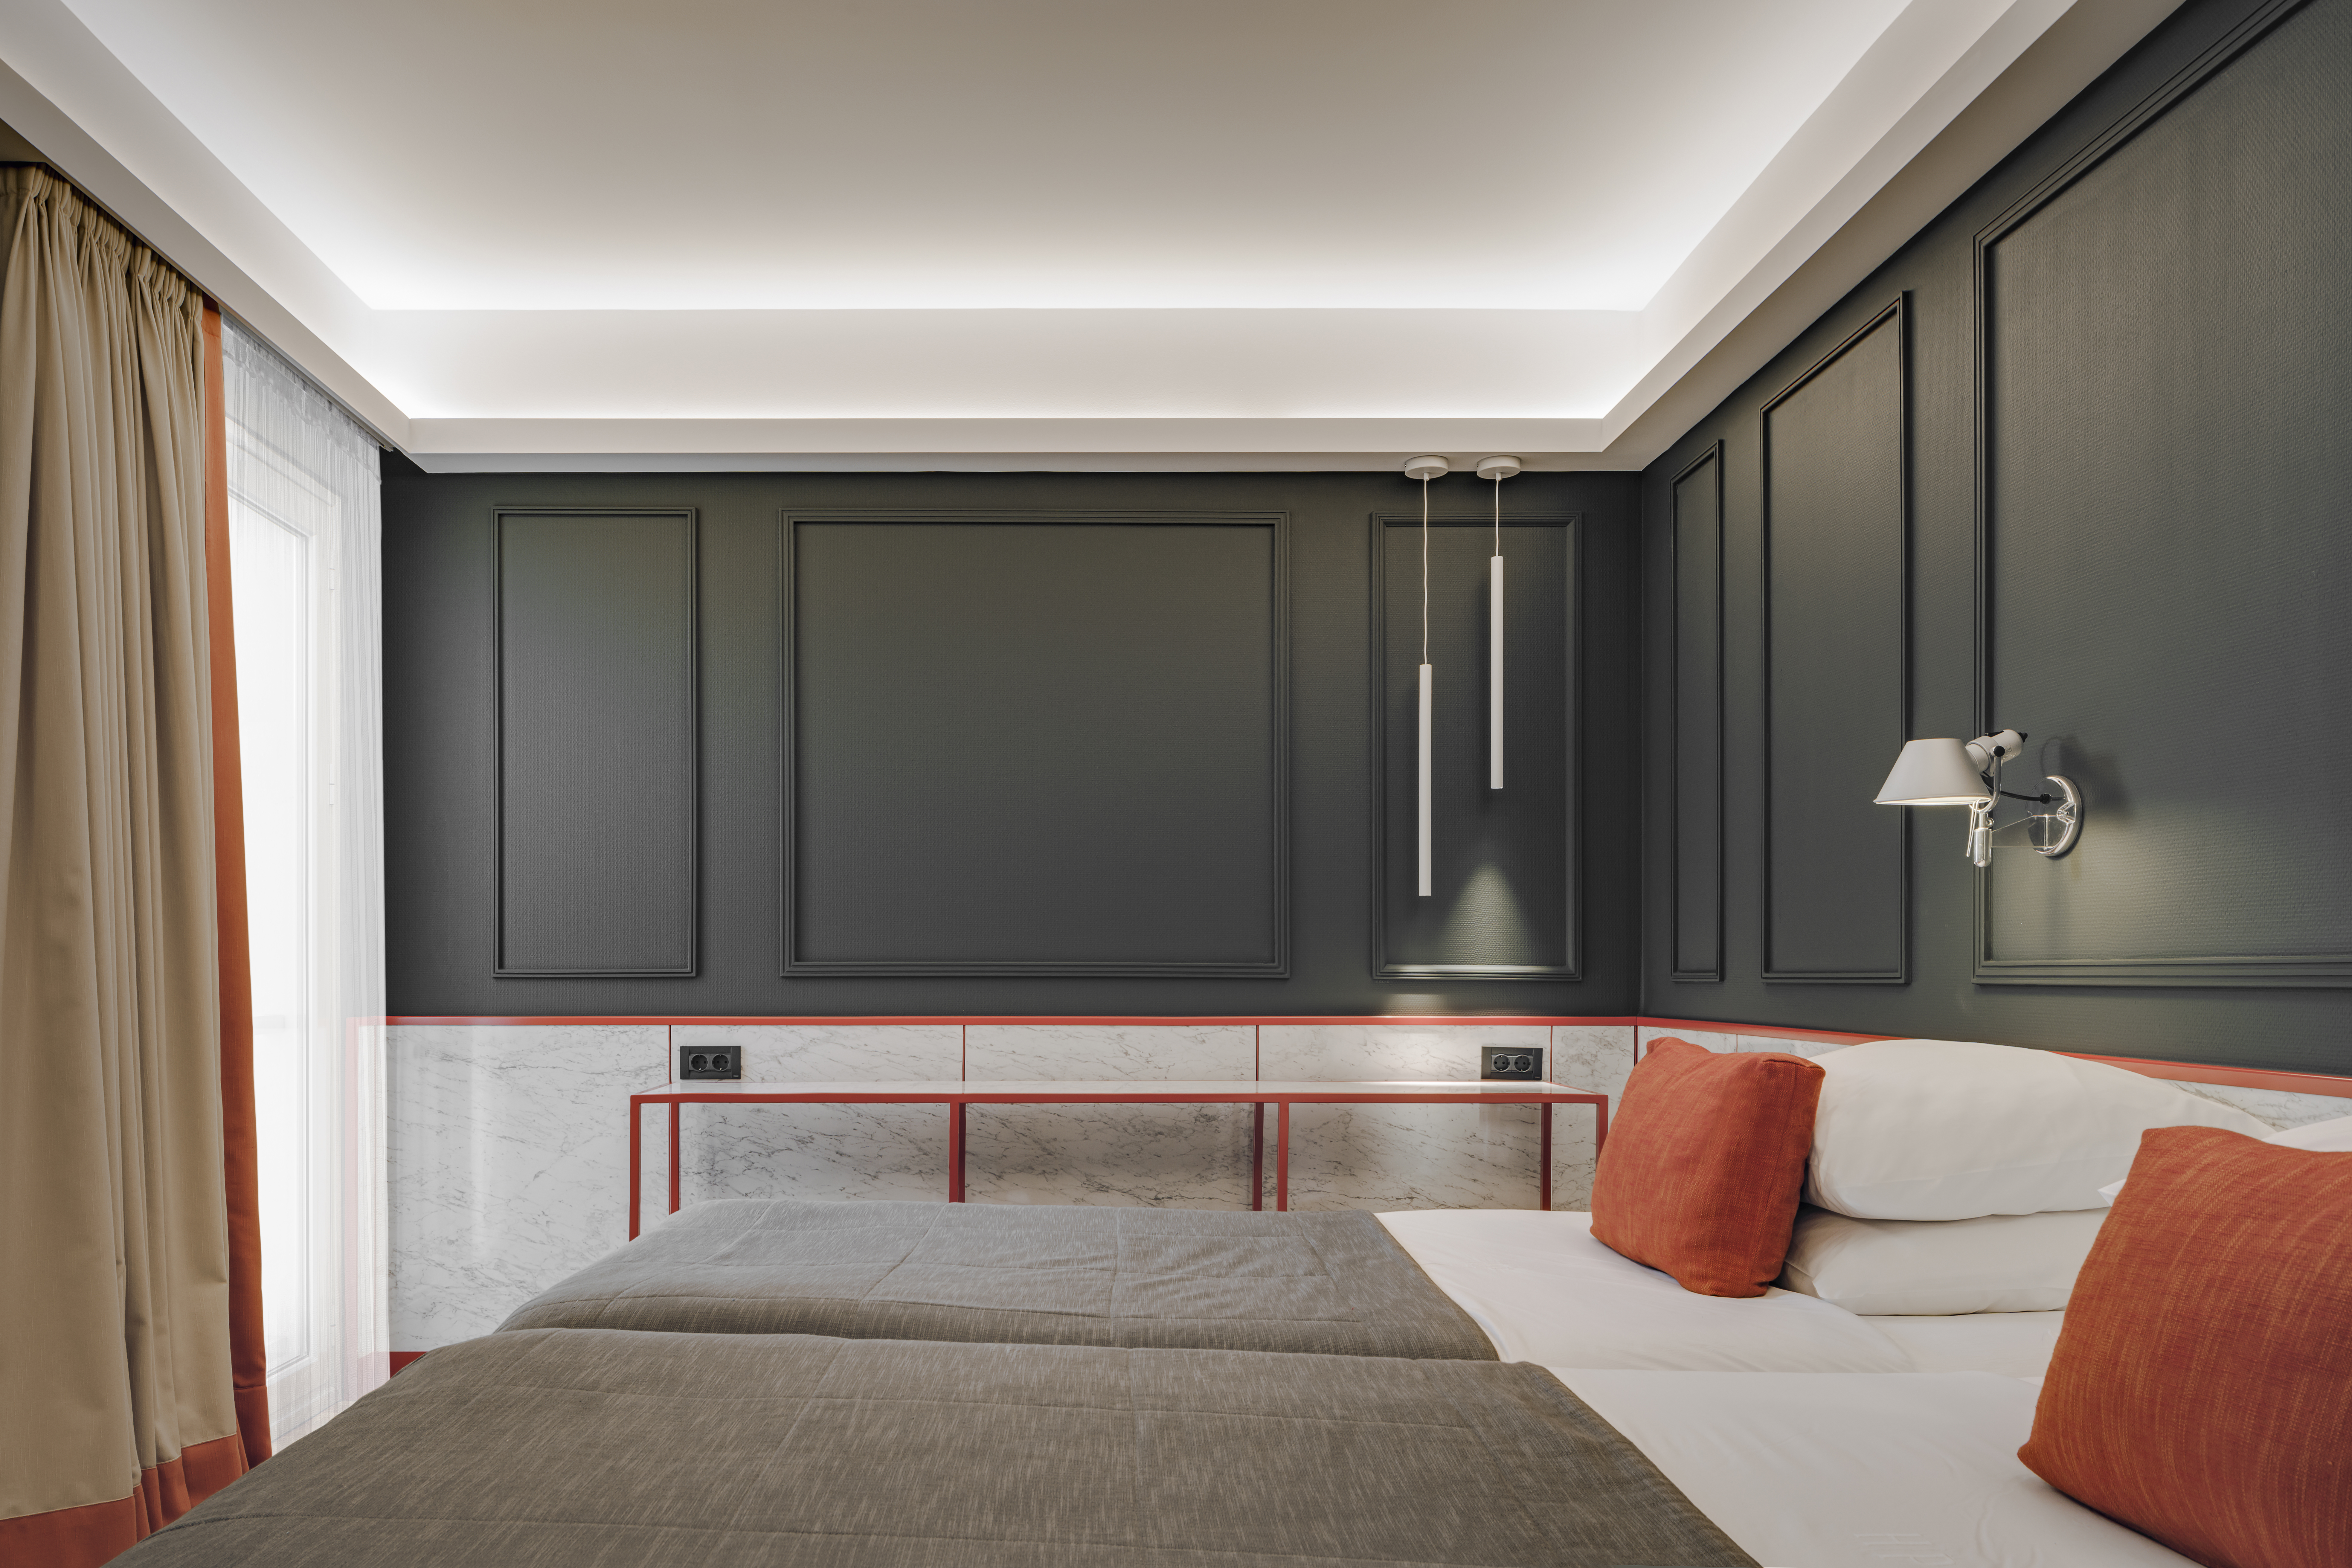 Classical and elegant style hotel